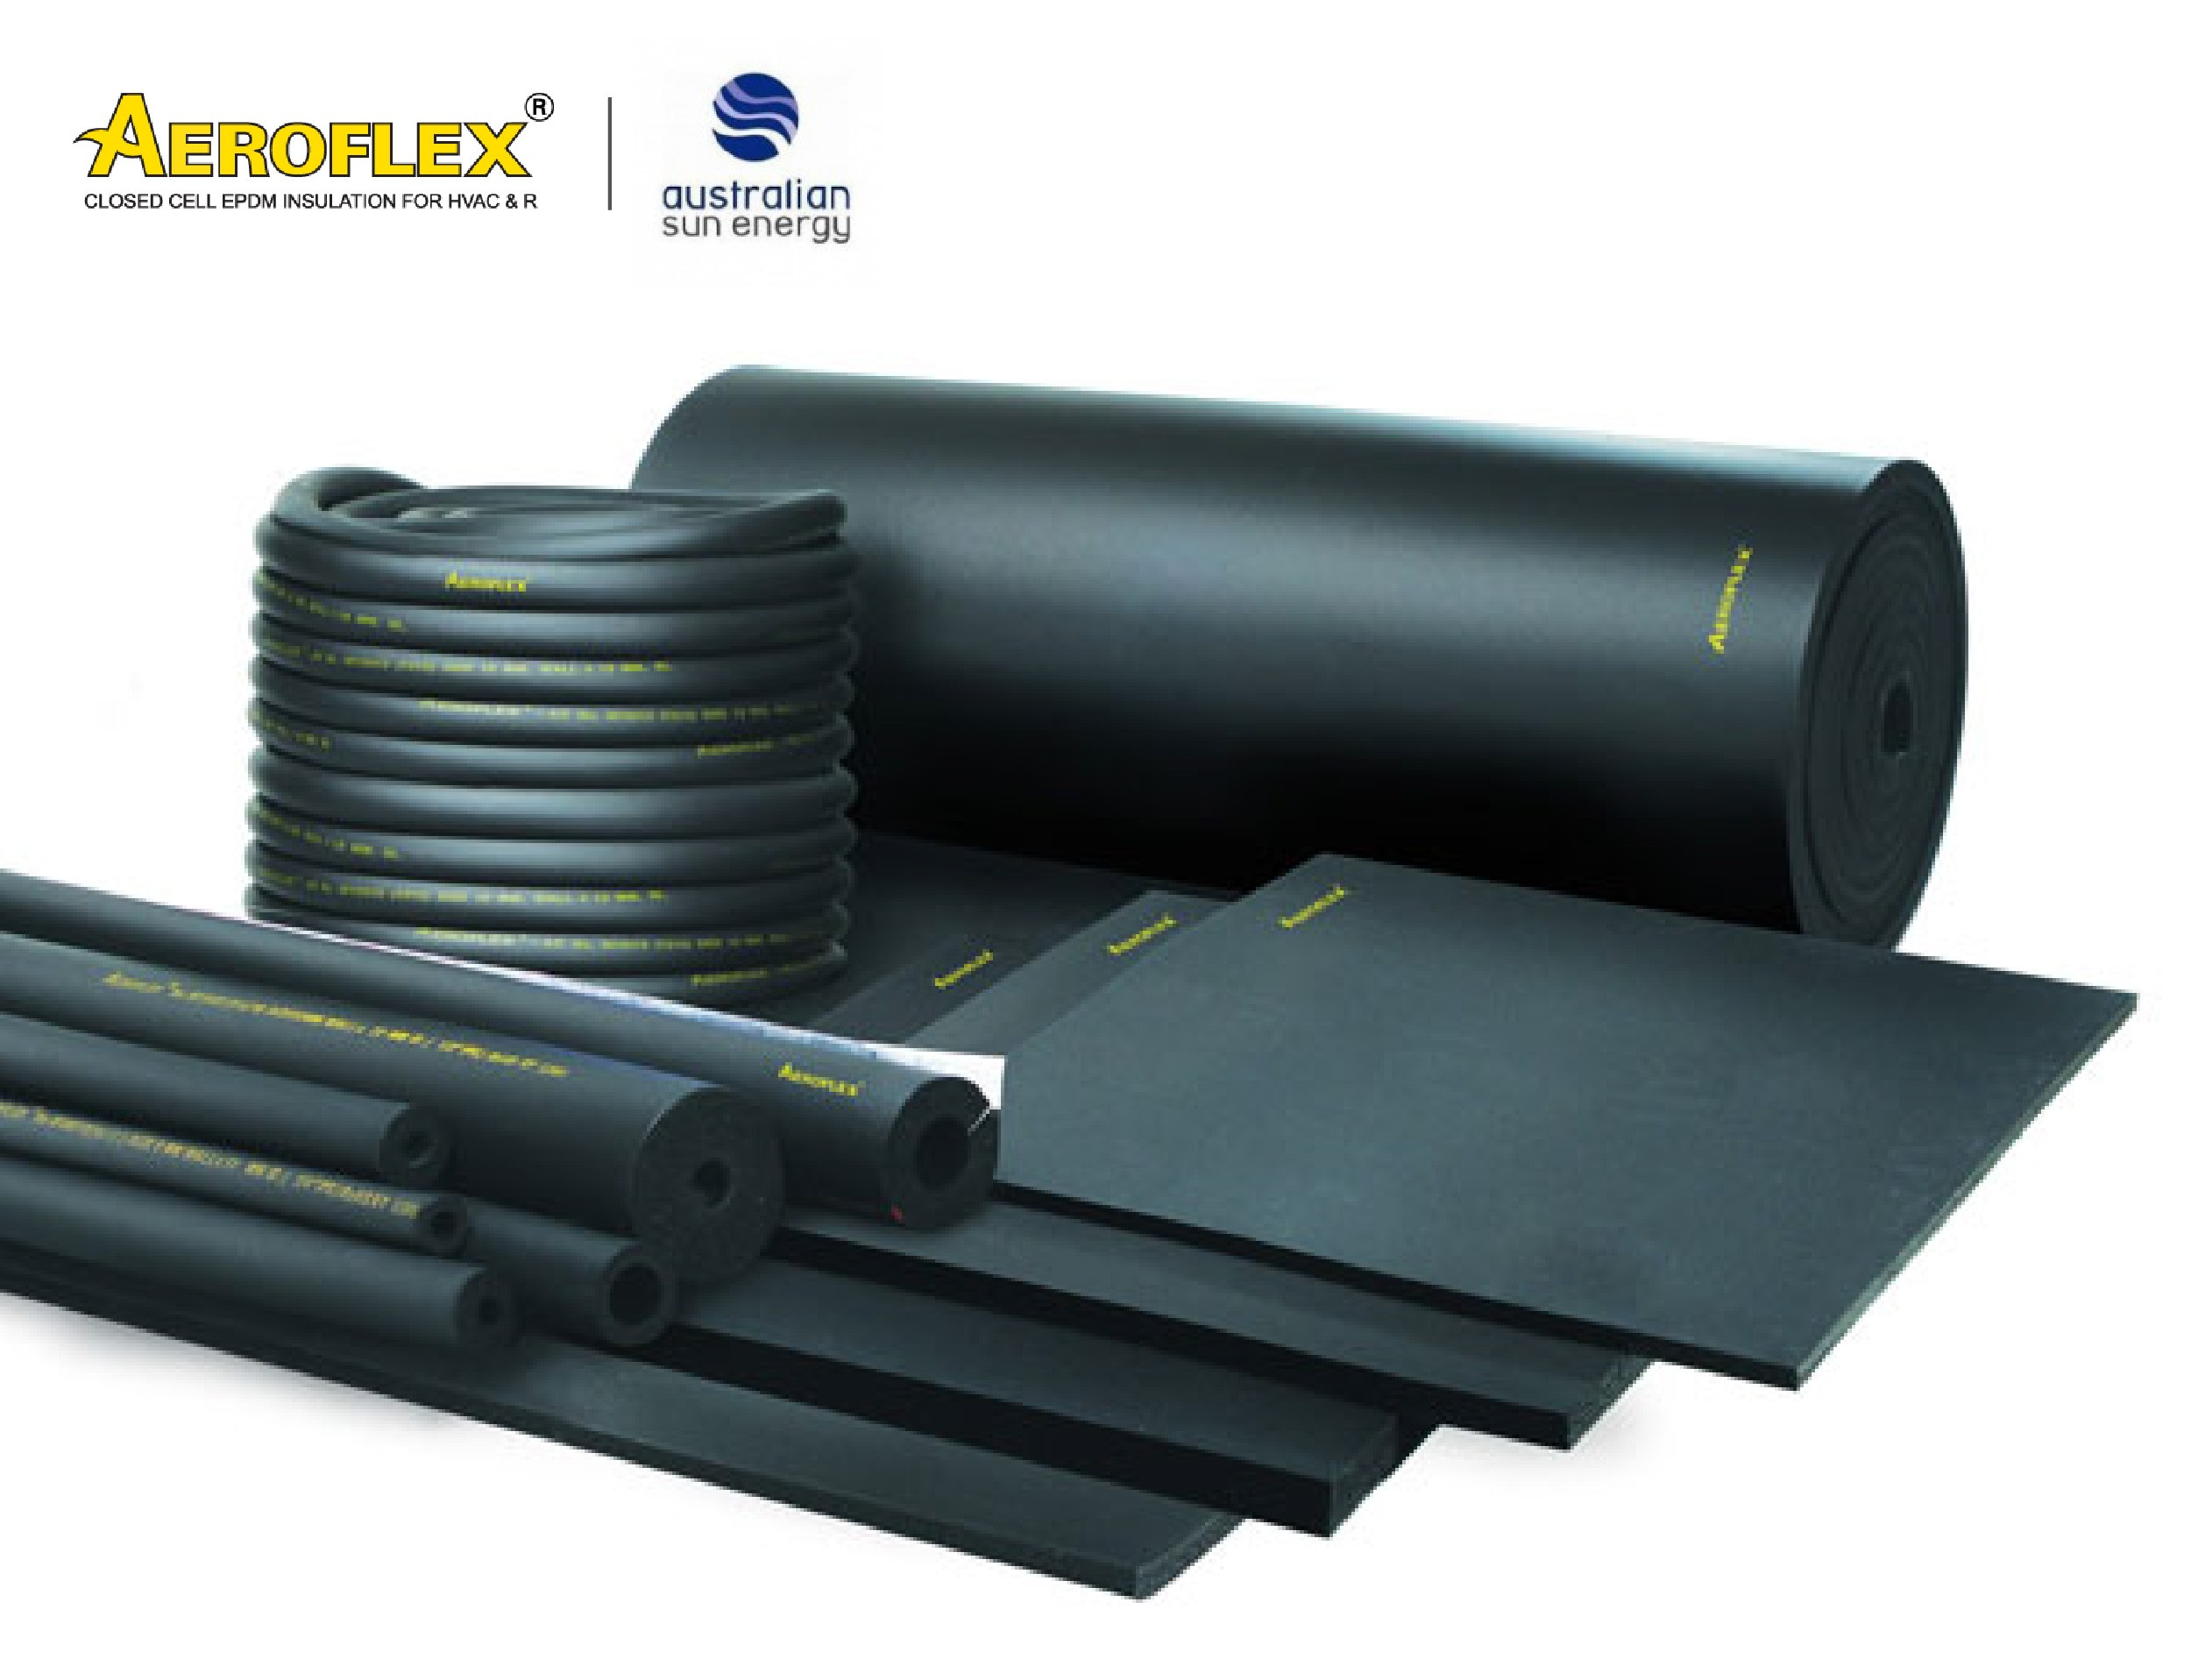 Aeroflex Insulation & Accessories